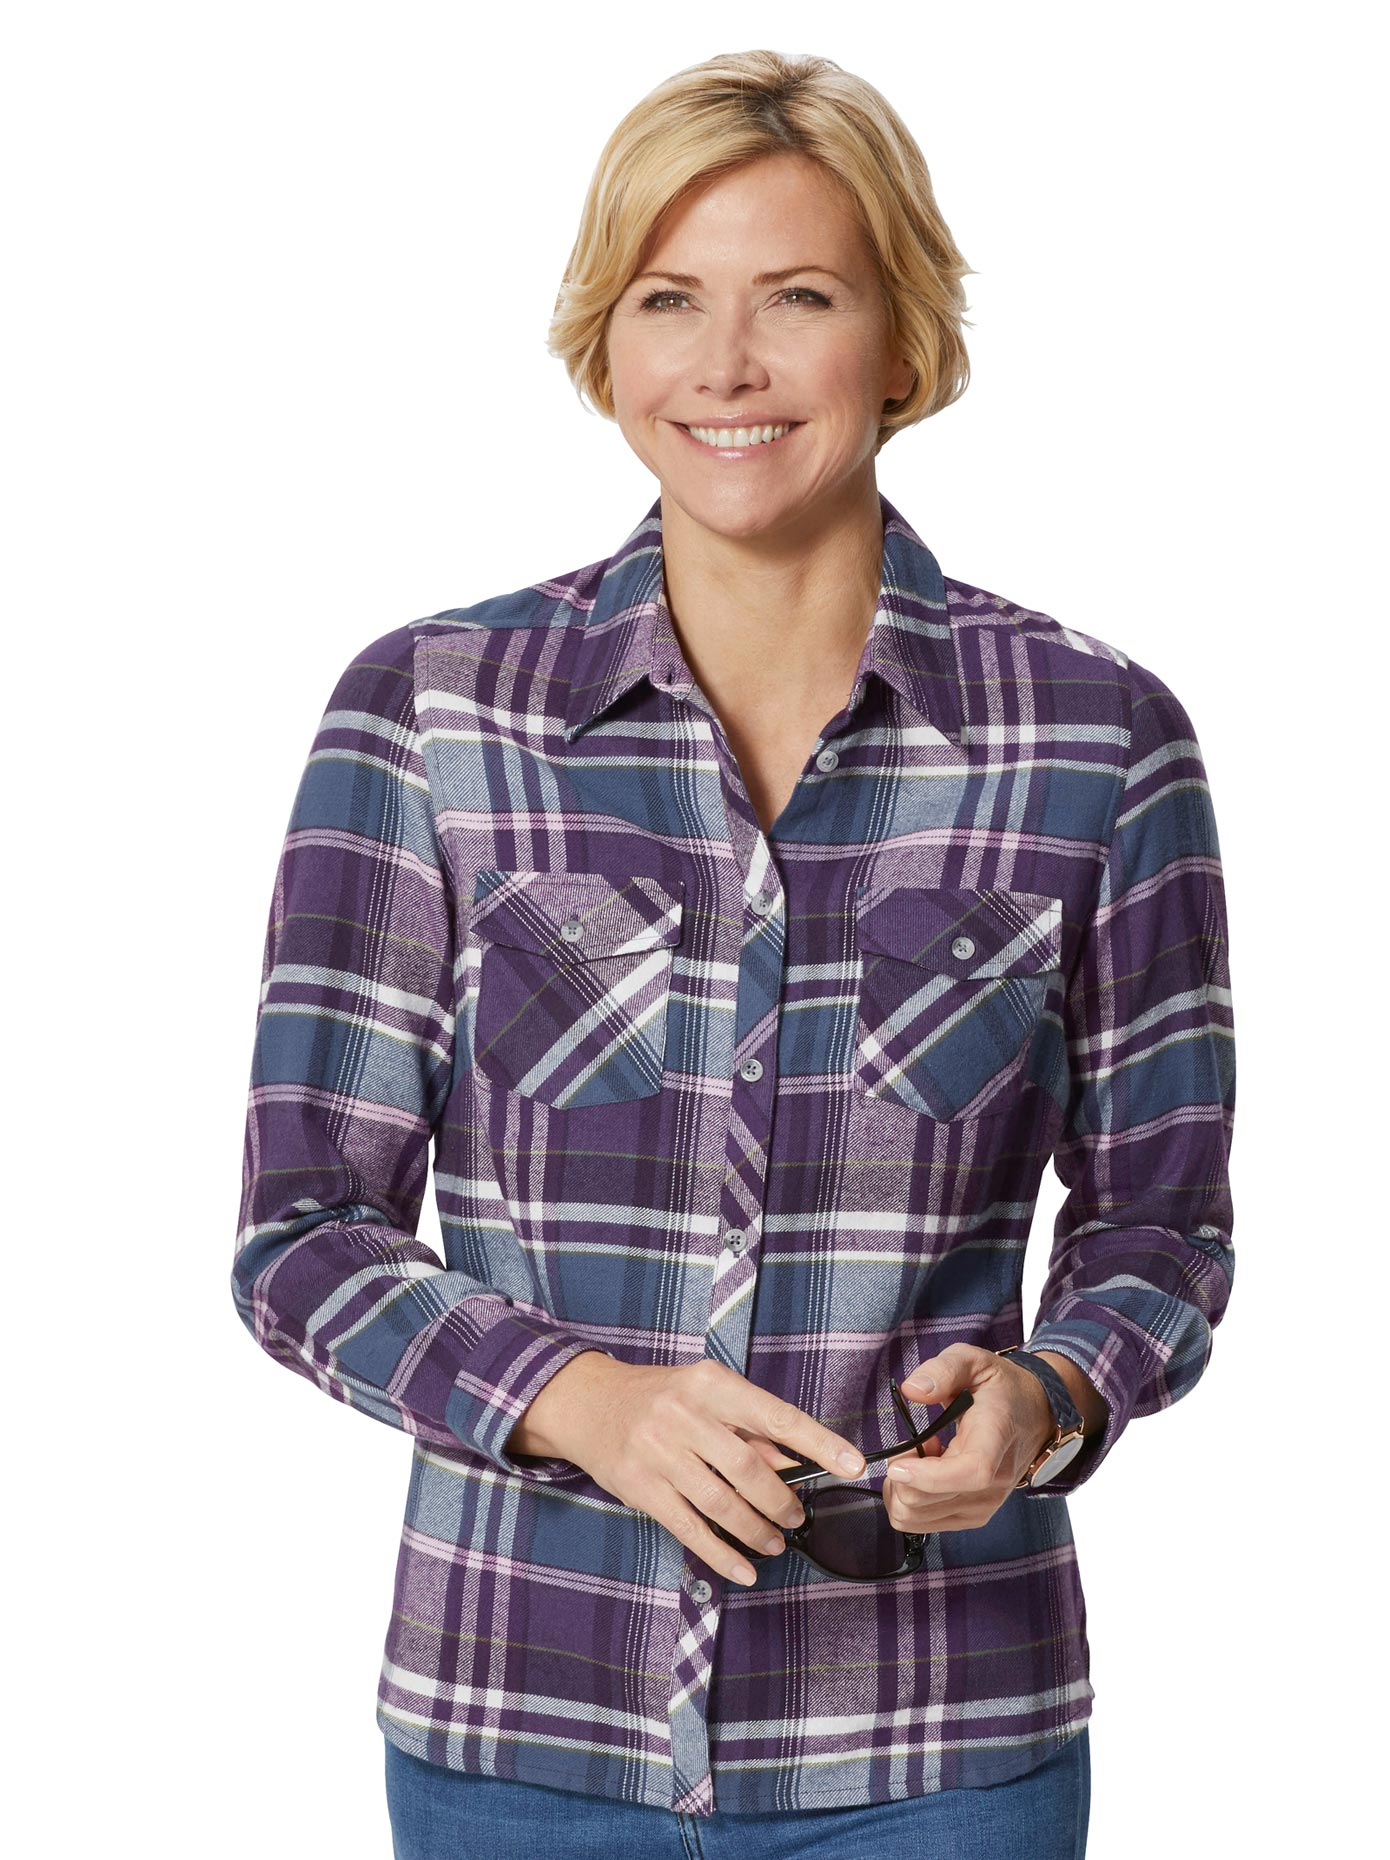 Bluse in Flanell-Qualität